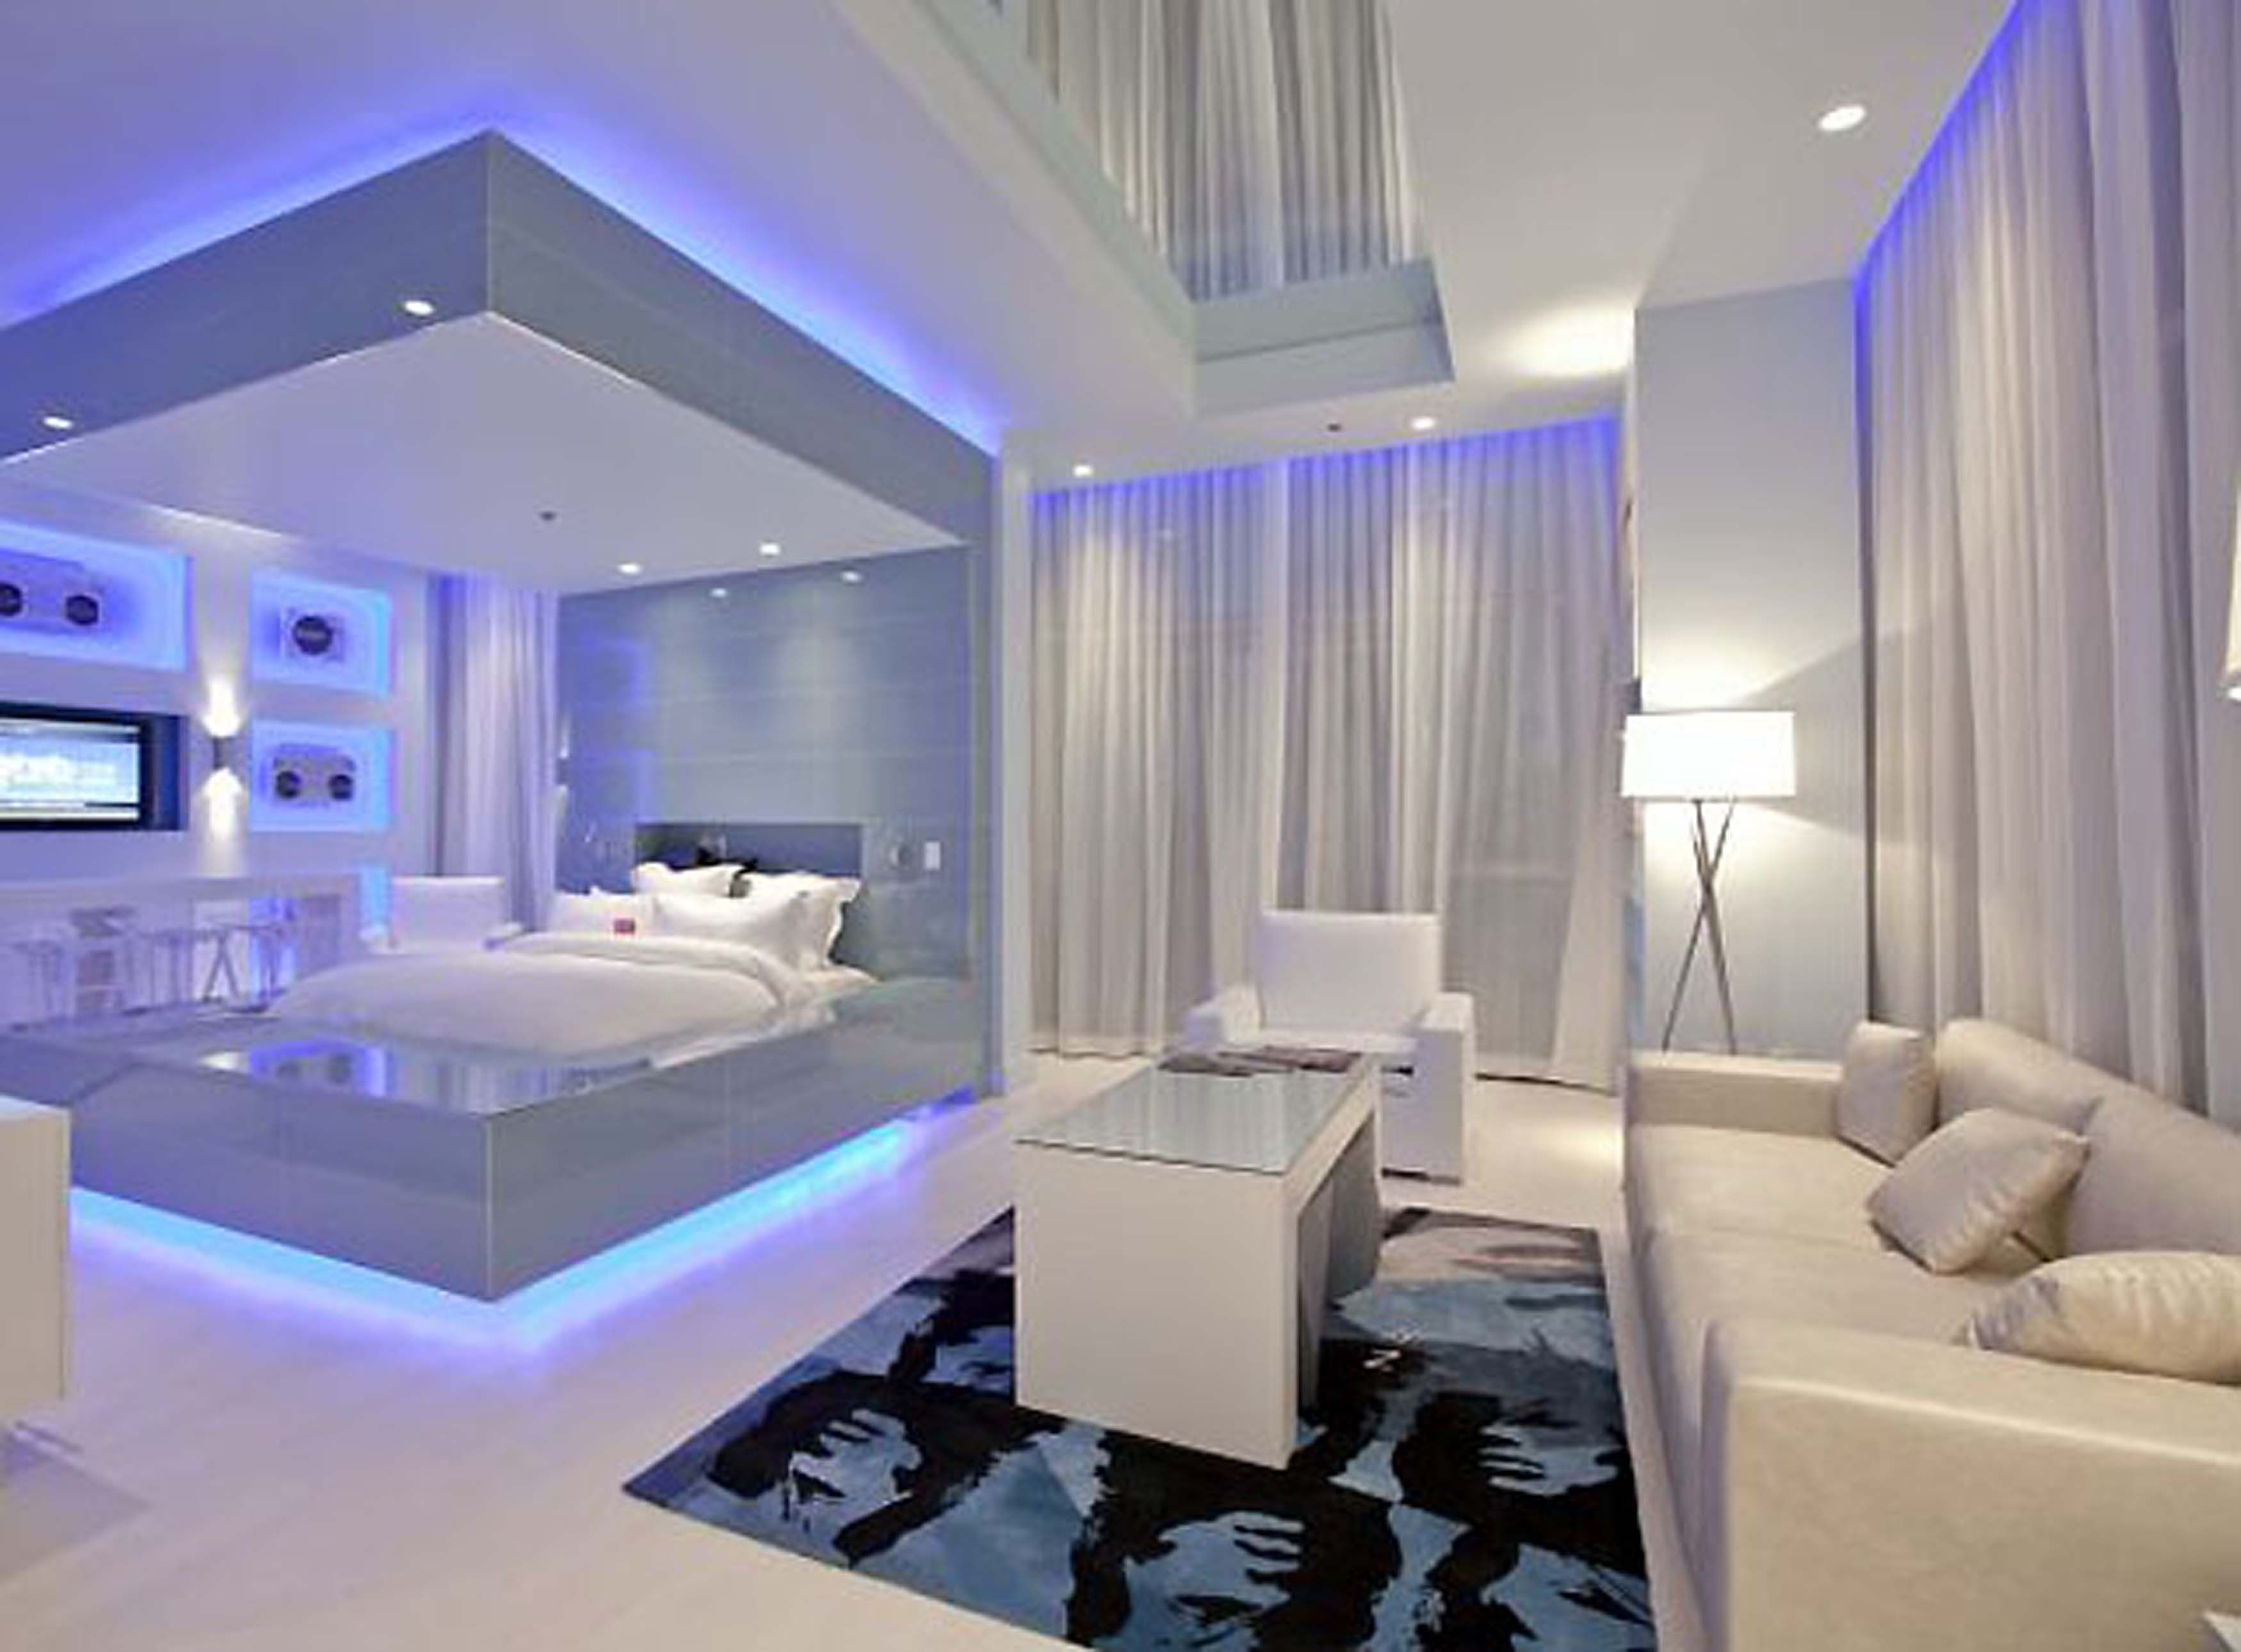 Modern Bedroom Lighting | We <3 Lighting | Pinterest | 럭셔리한 침실 inside How to Decorate Modern Bedroom with Lighting Design Ideas - modern bedroom with lighting